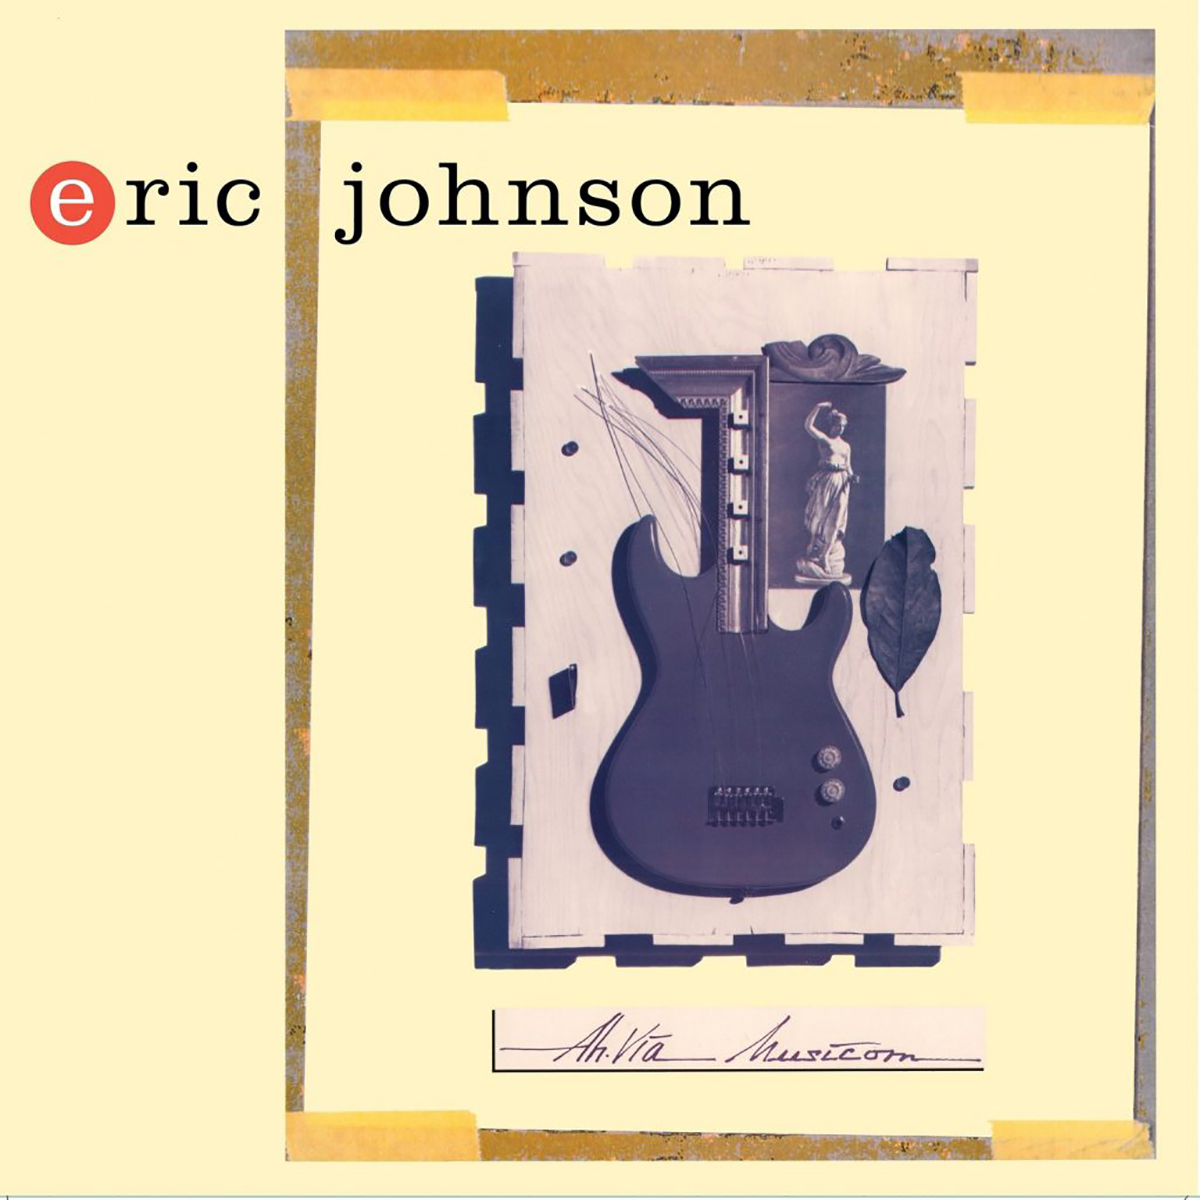 ERIC JOHNSON - AH VIA MUSICOM LP